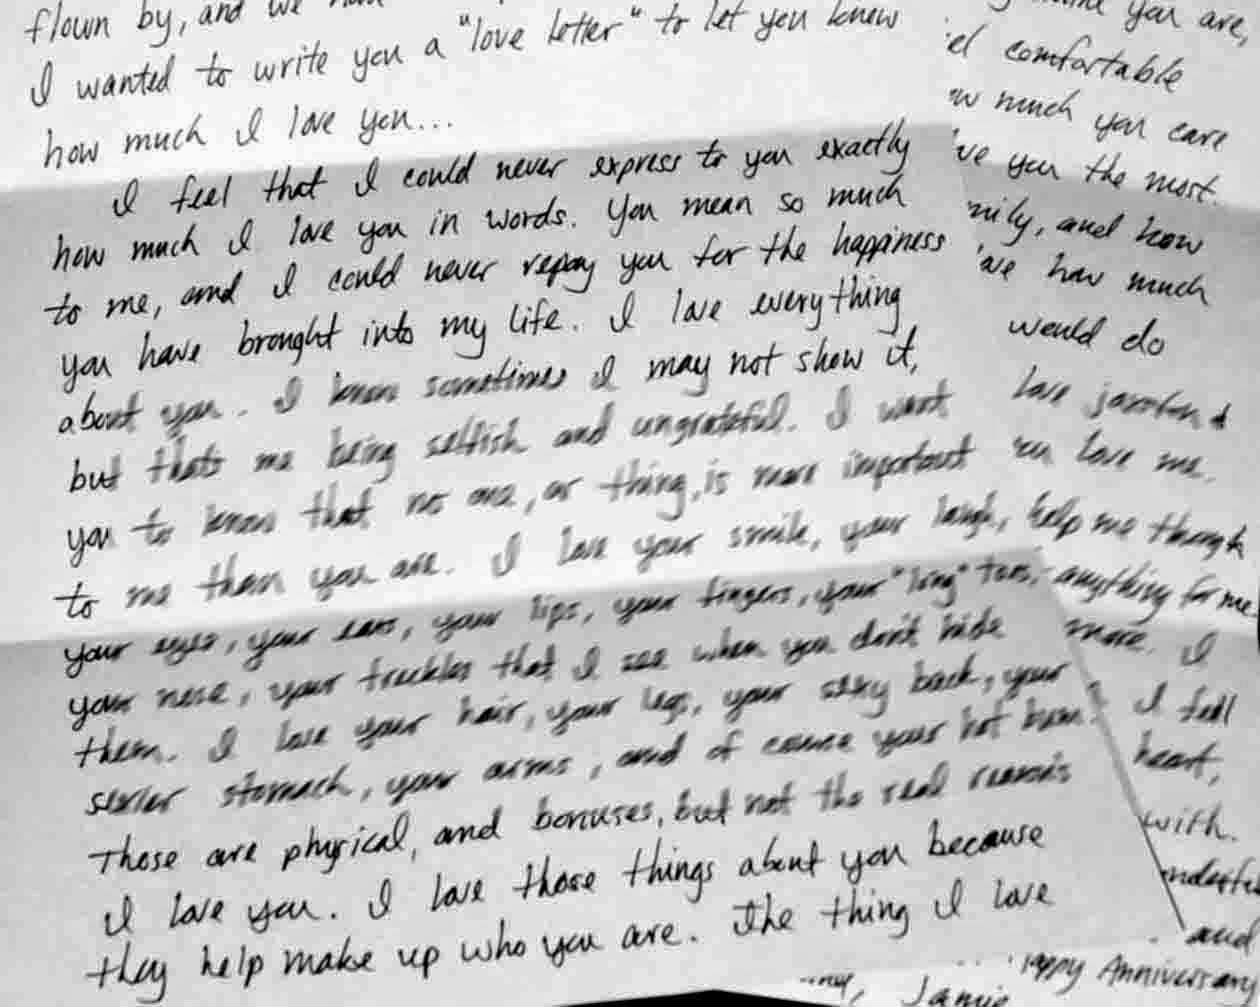 Cutest love letter ever written